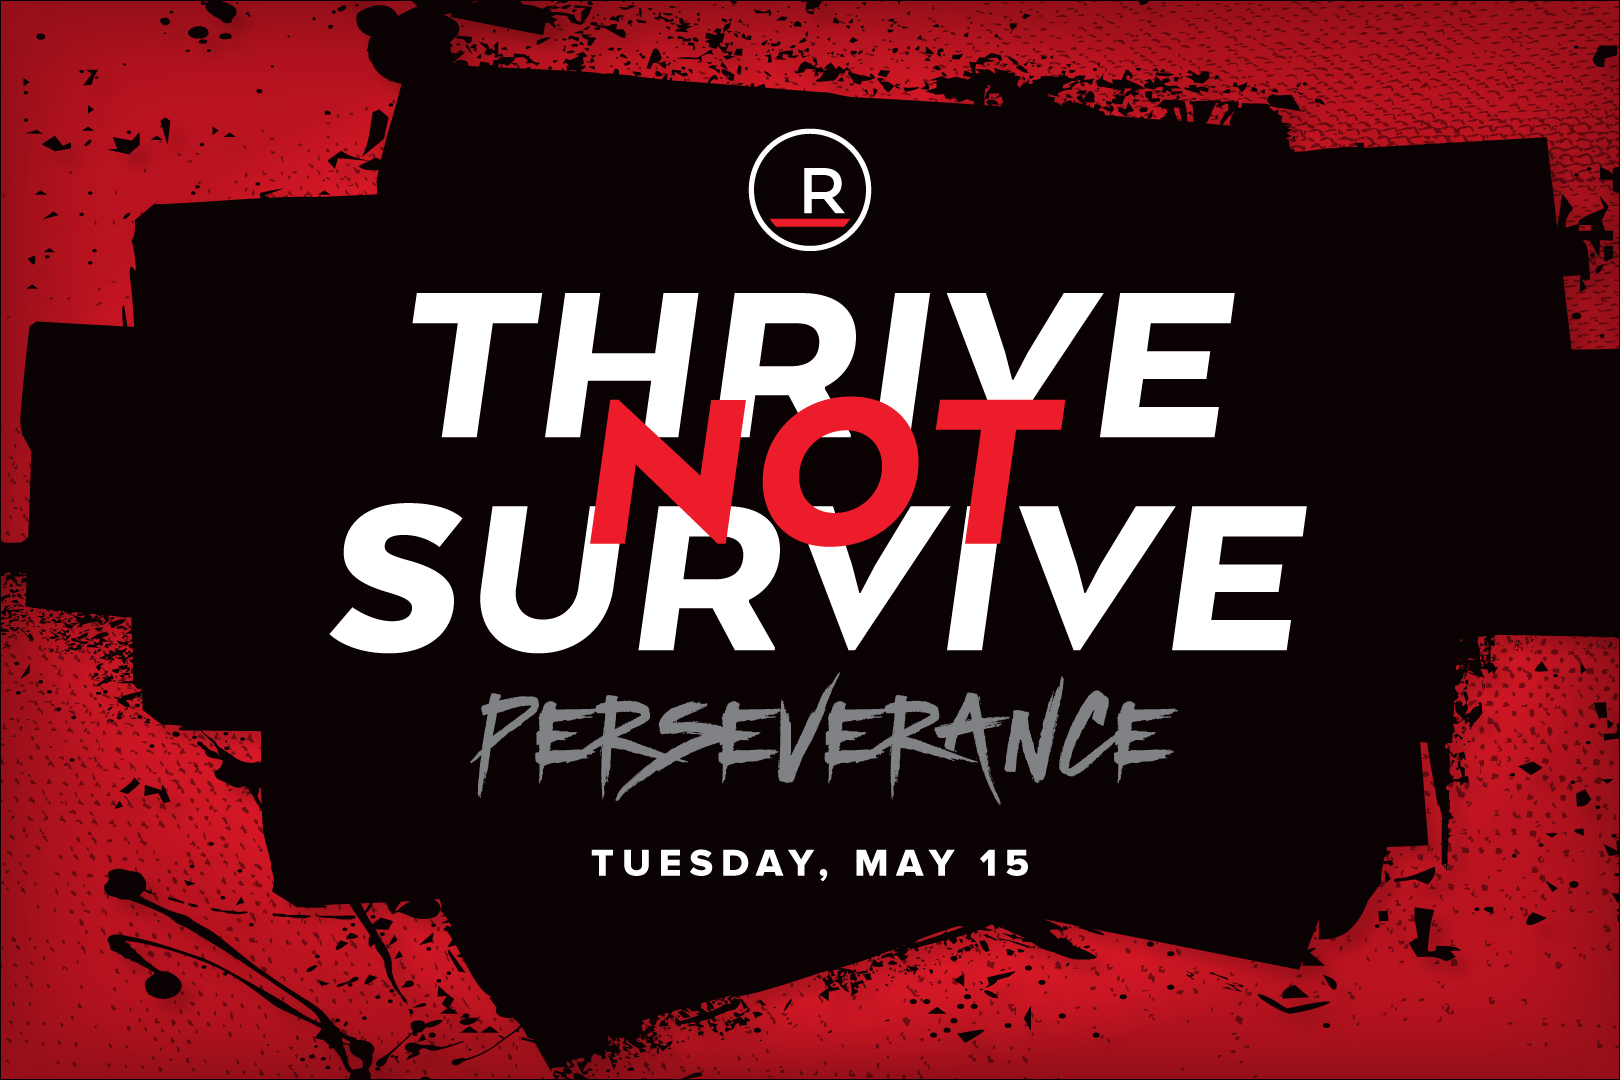 Thrive Not Survive 5